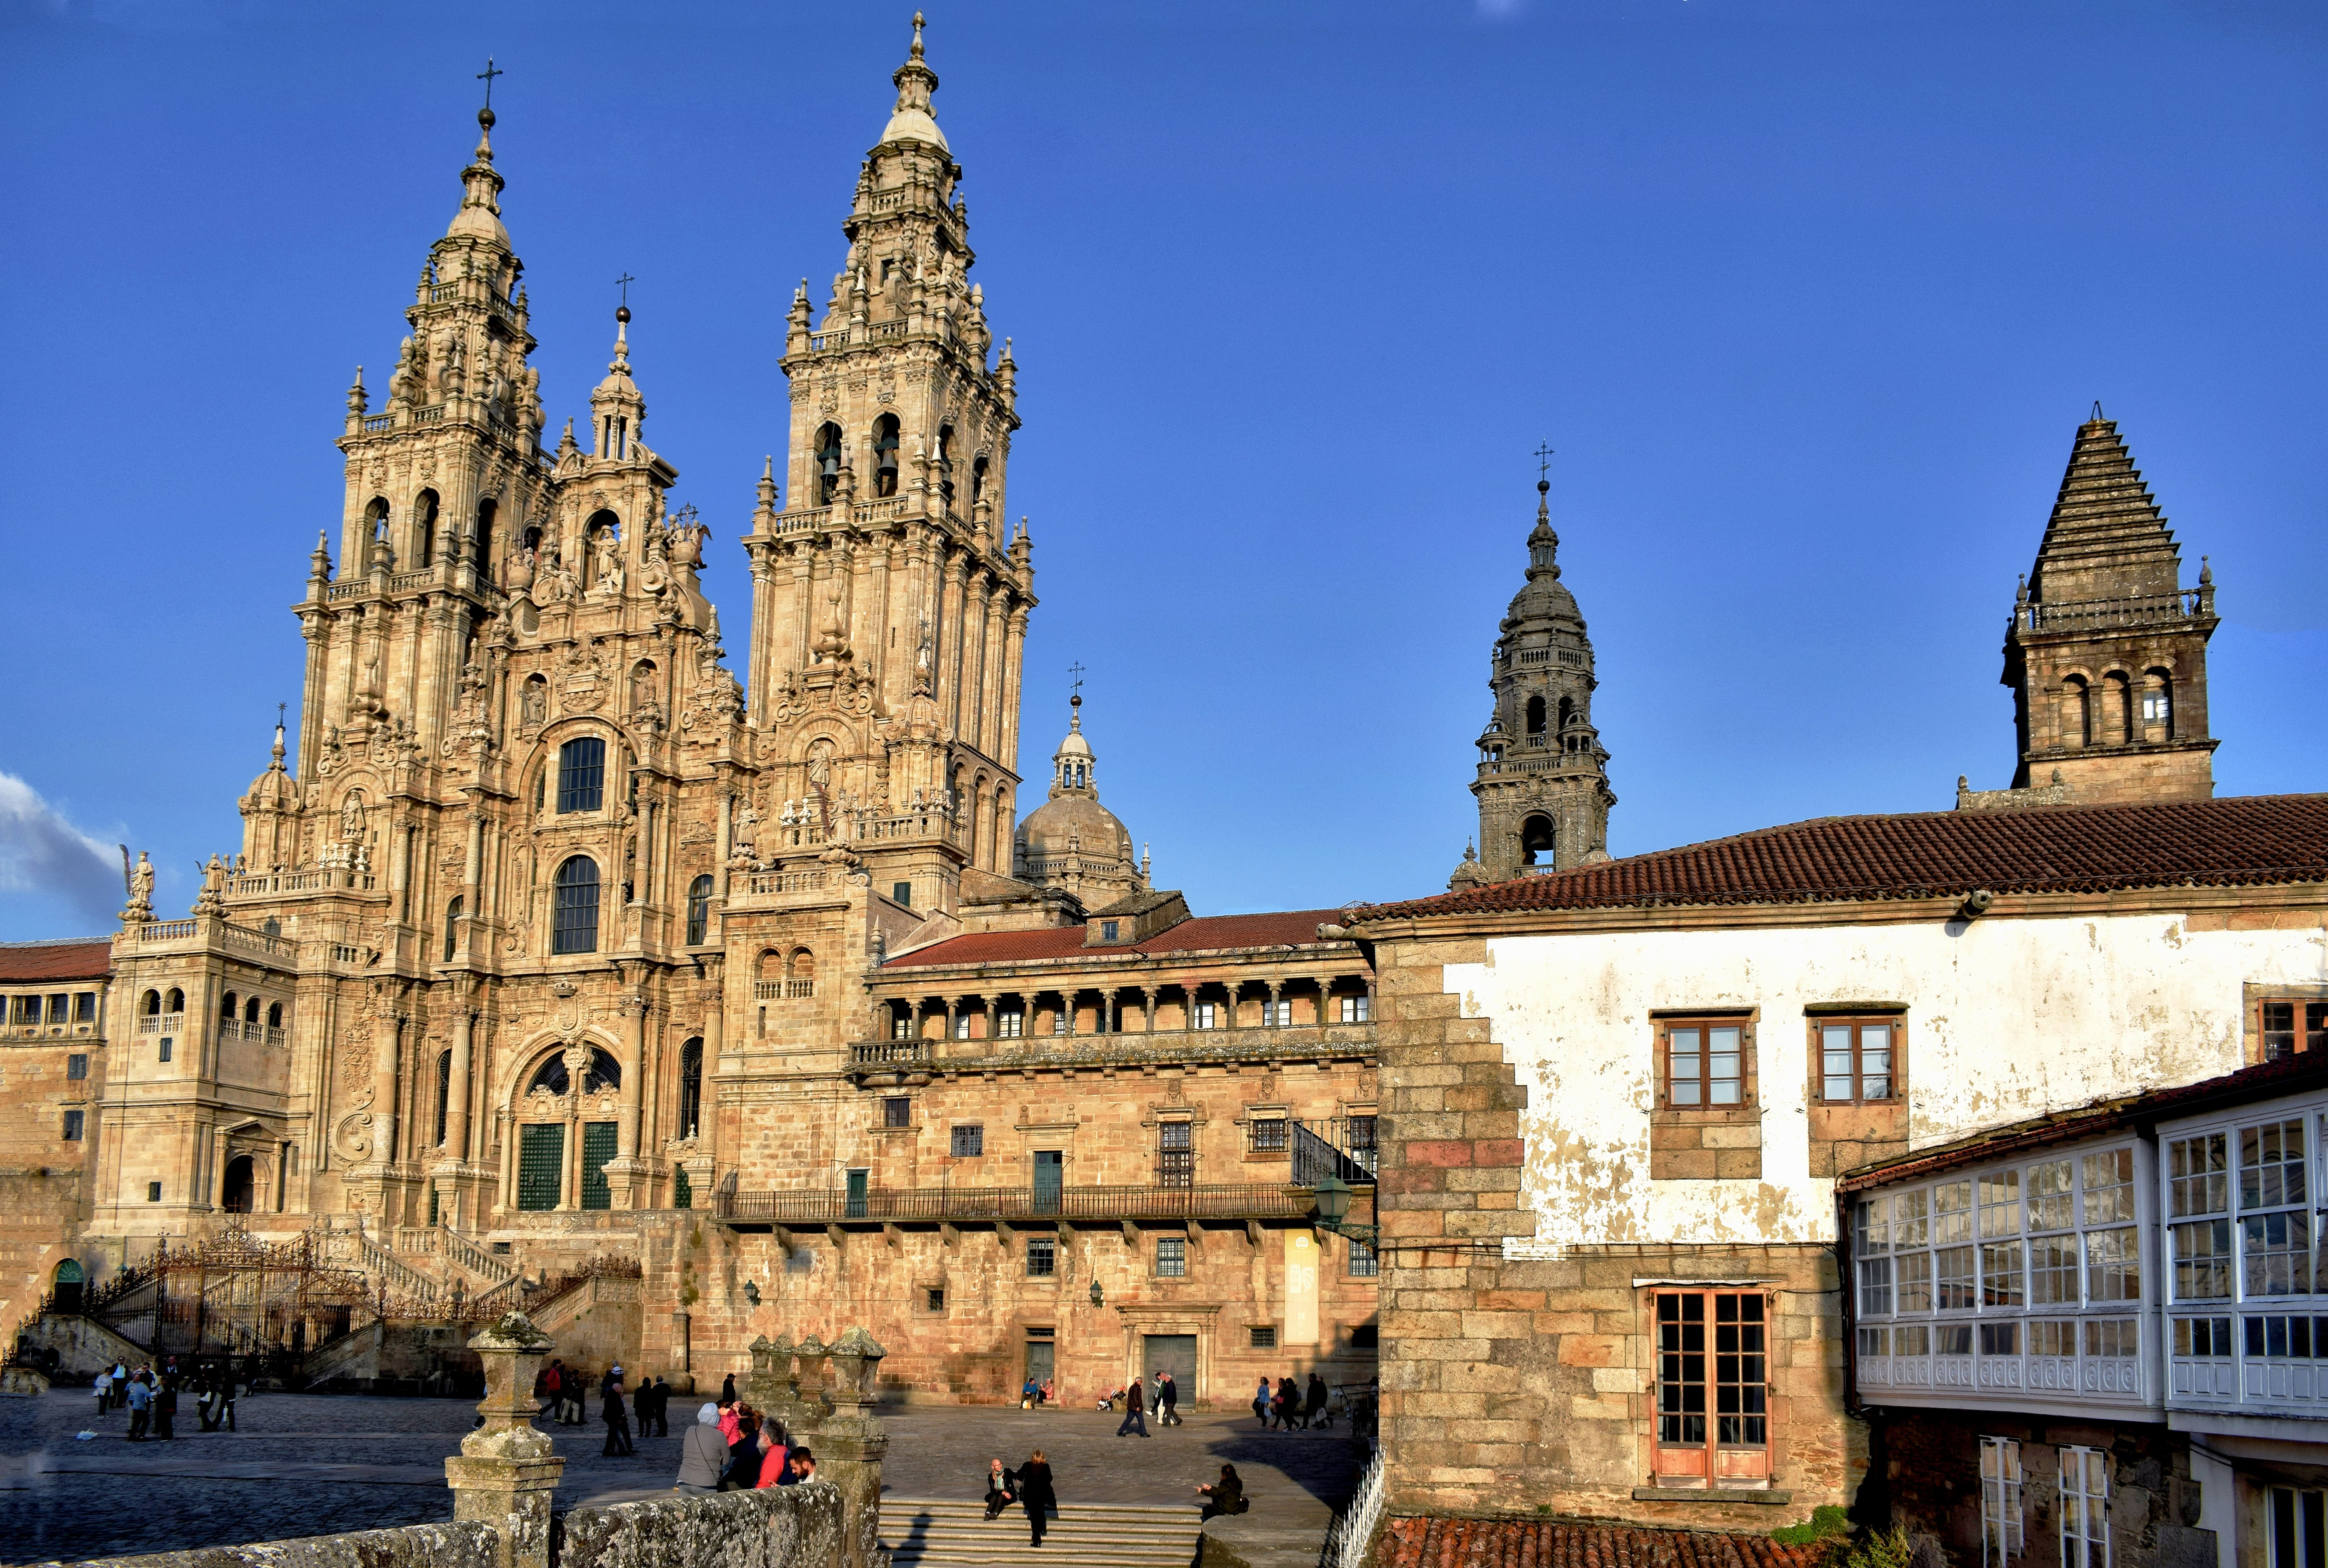 Following the path to Santiago de Compostela is a cool thing to do in Spain